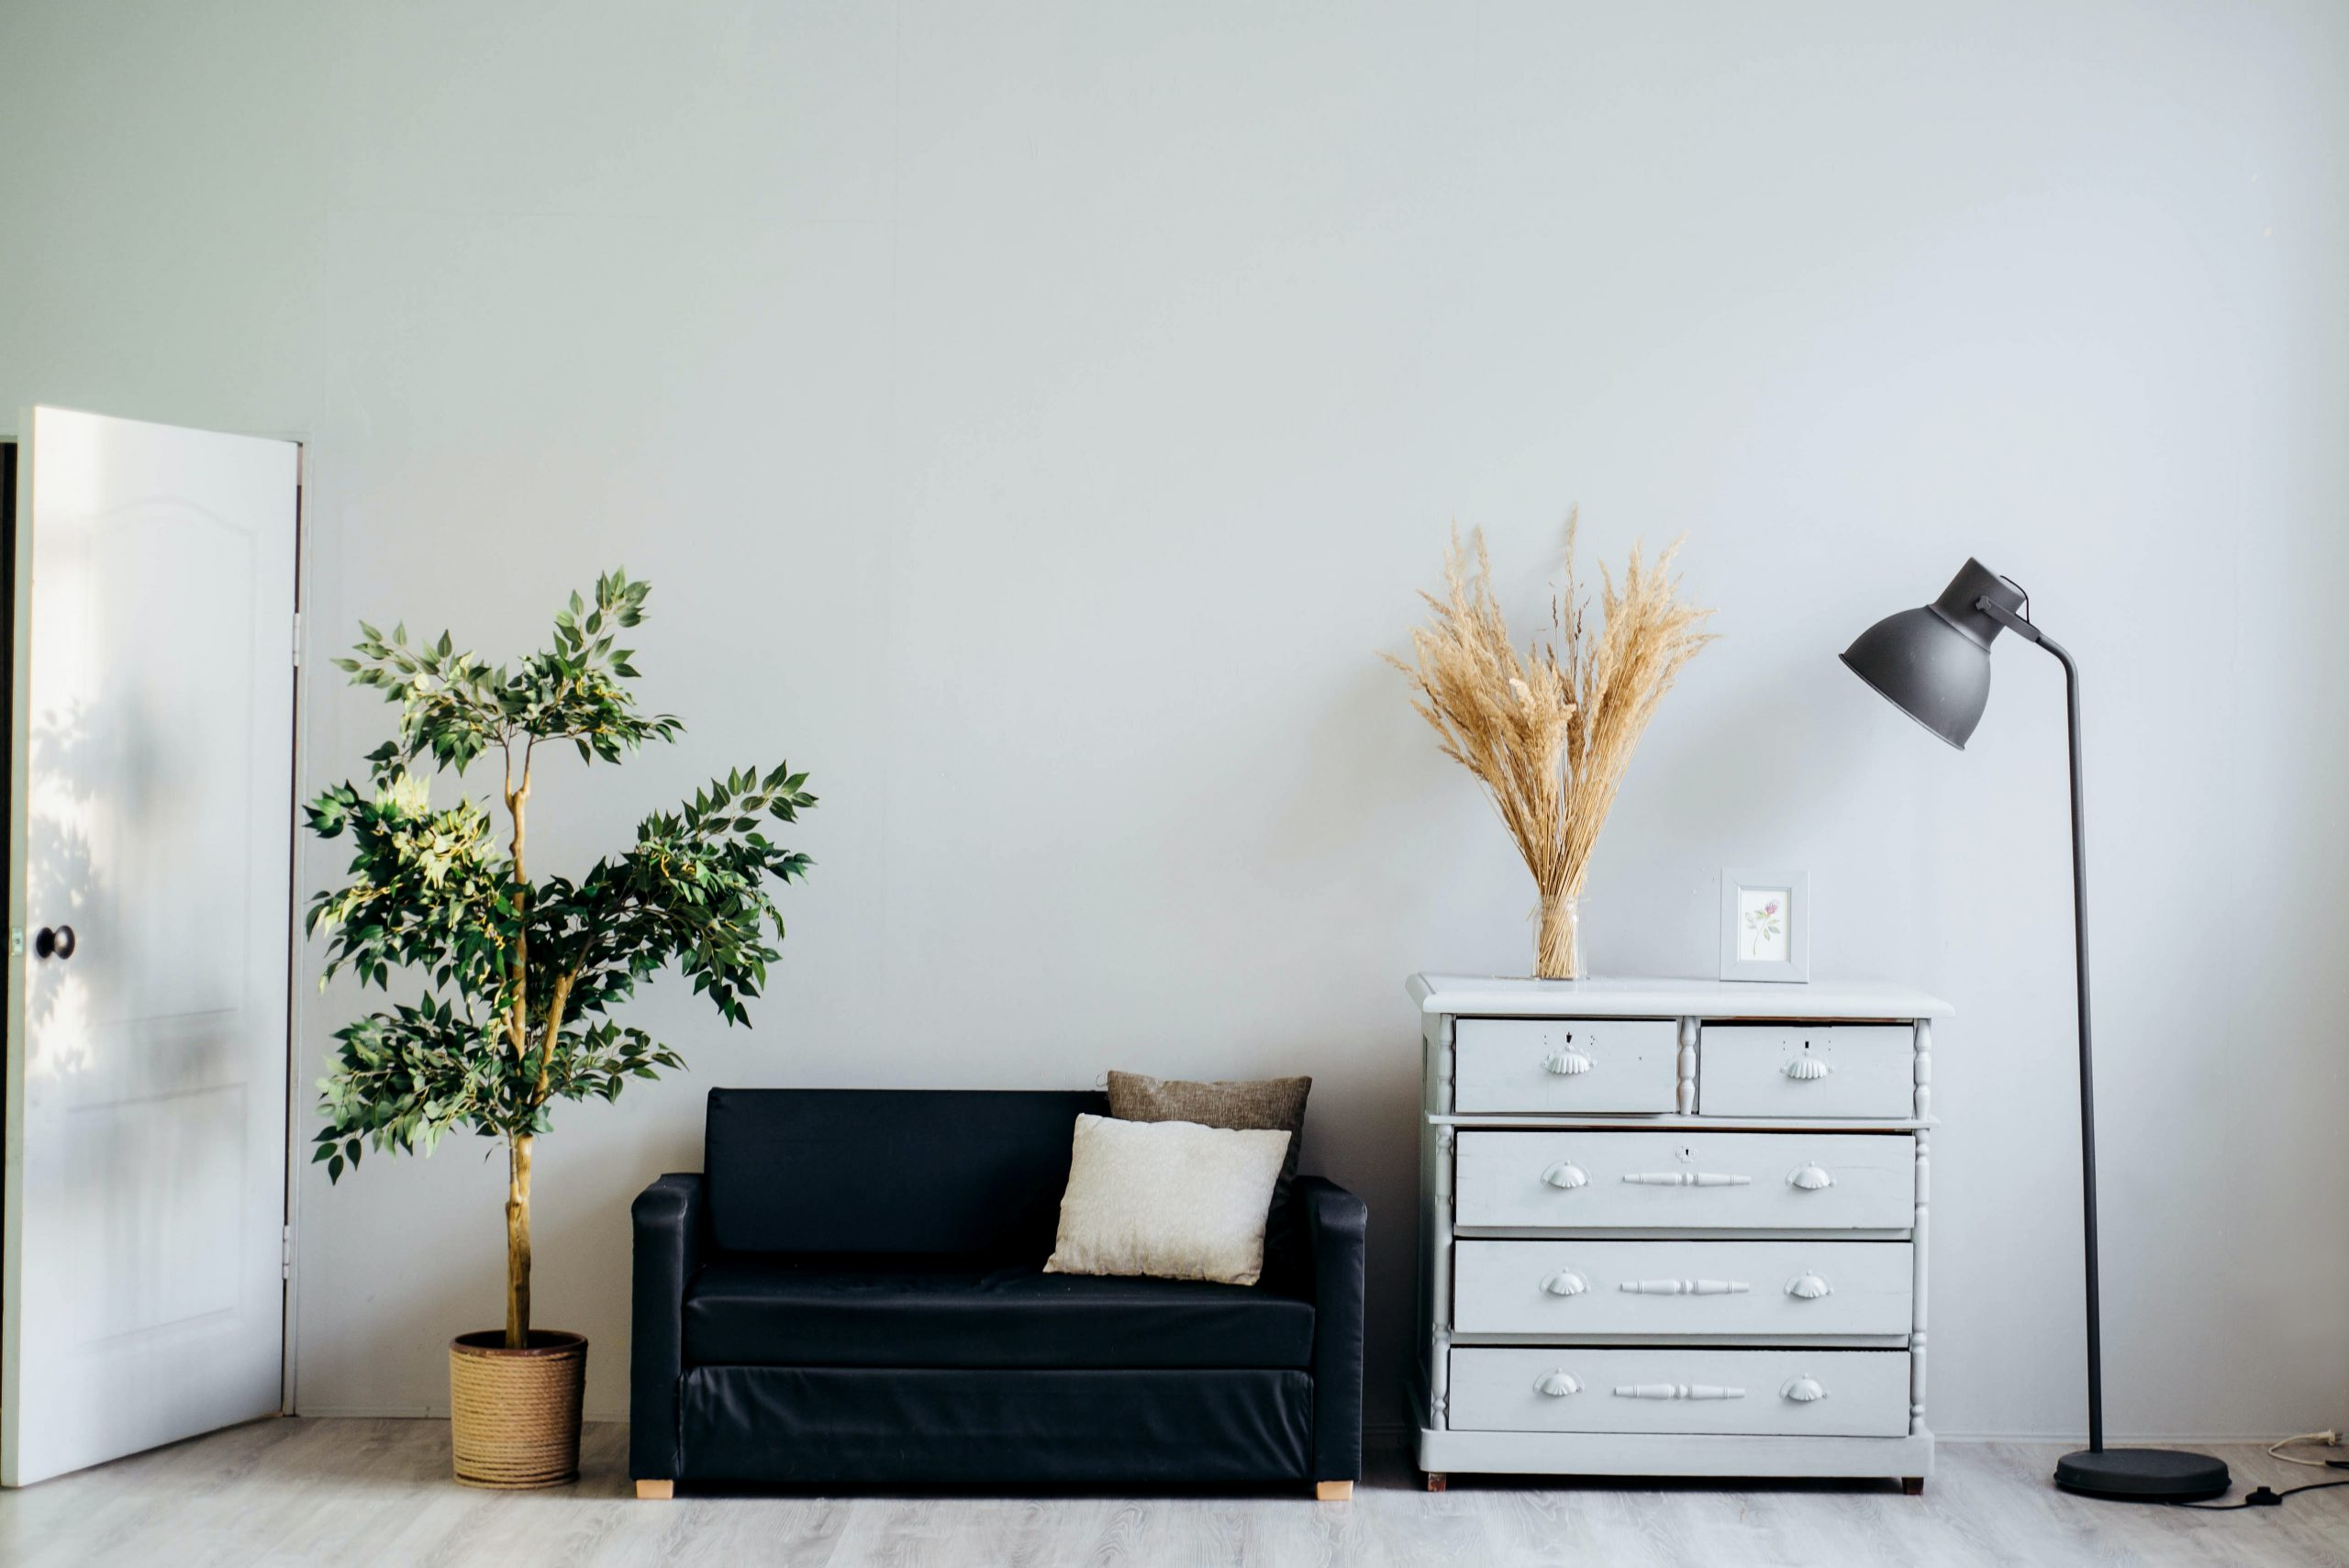 5 Health Benefits You Can Get By Having Plants In Your House